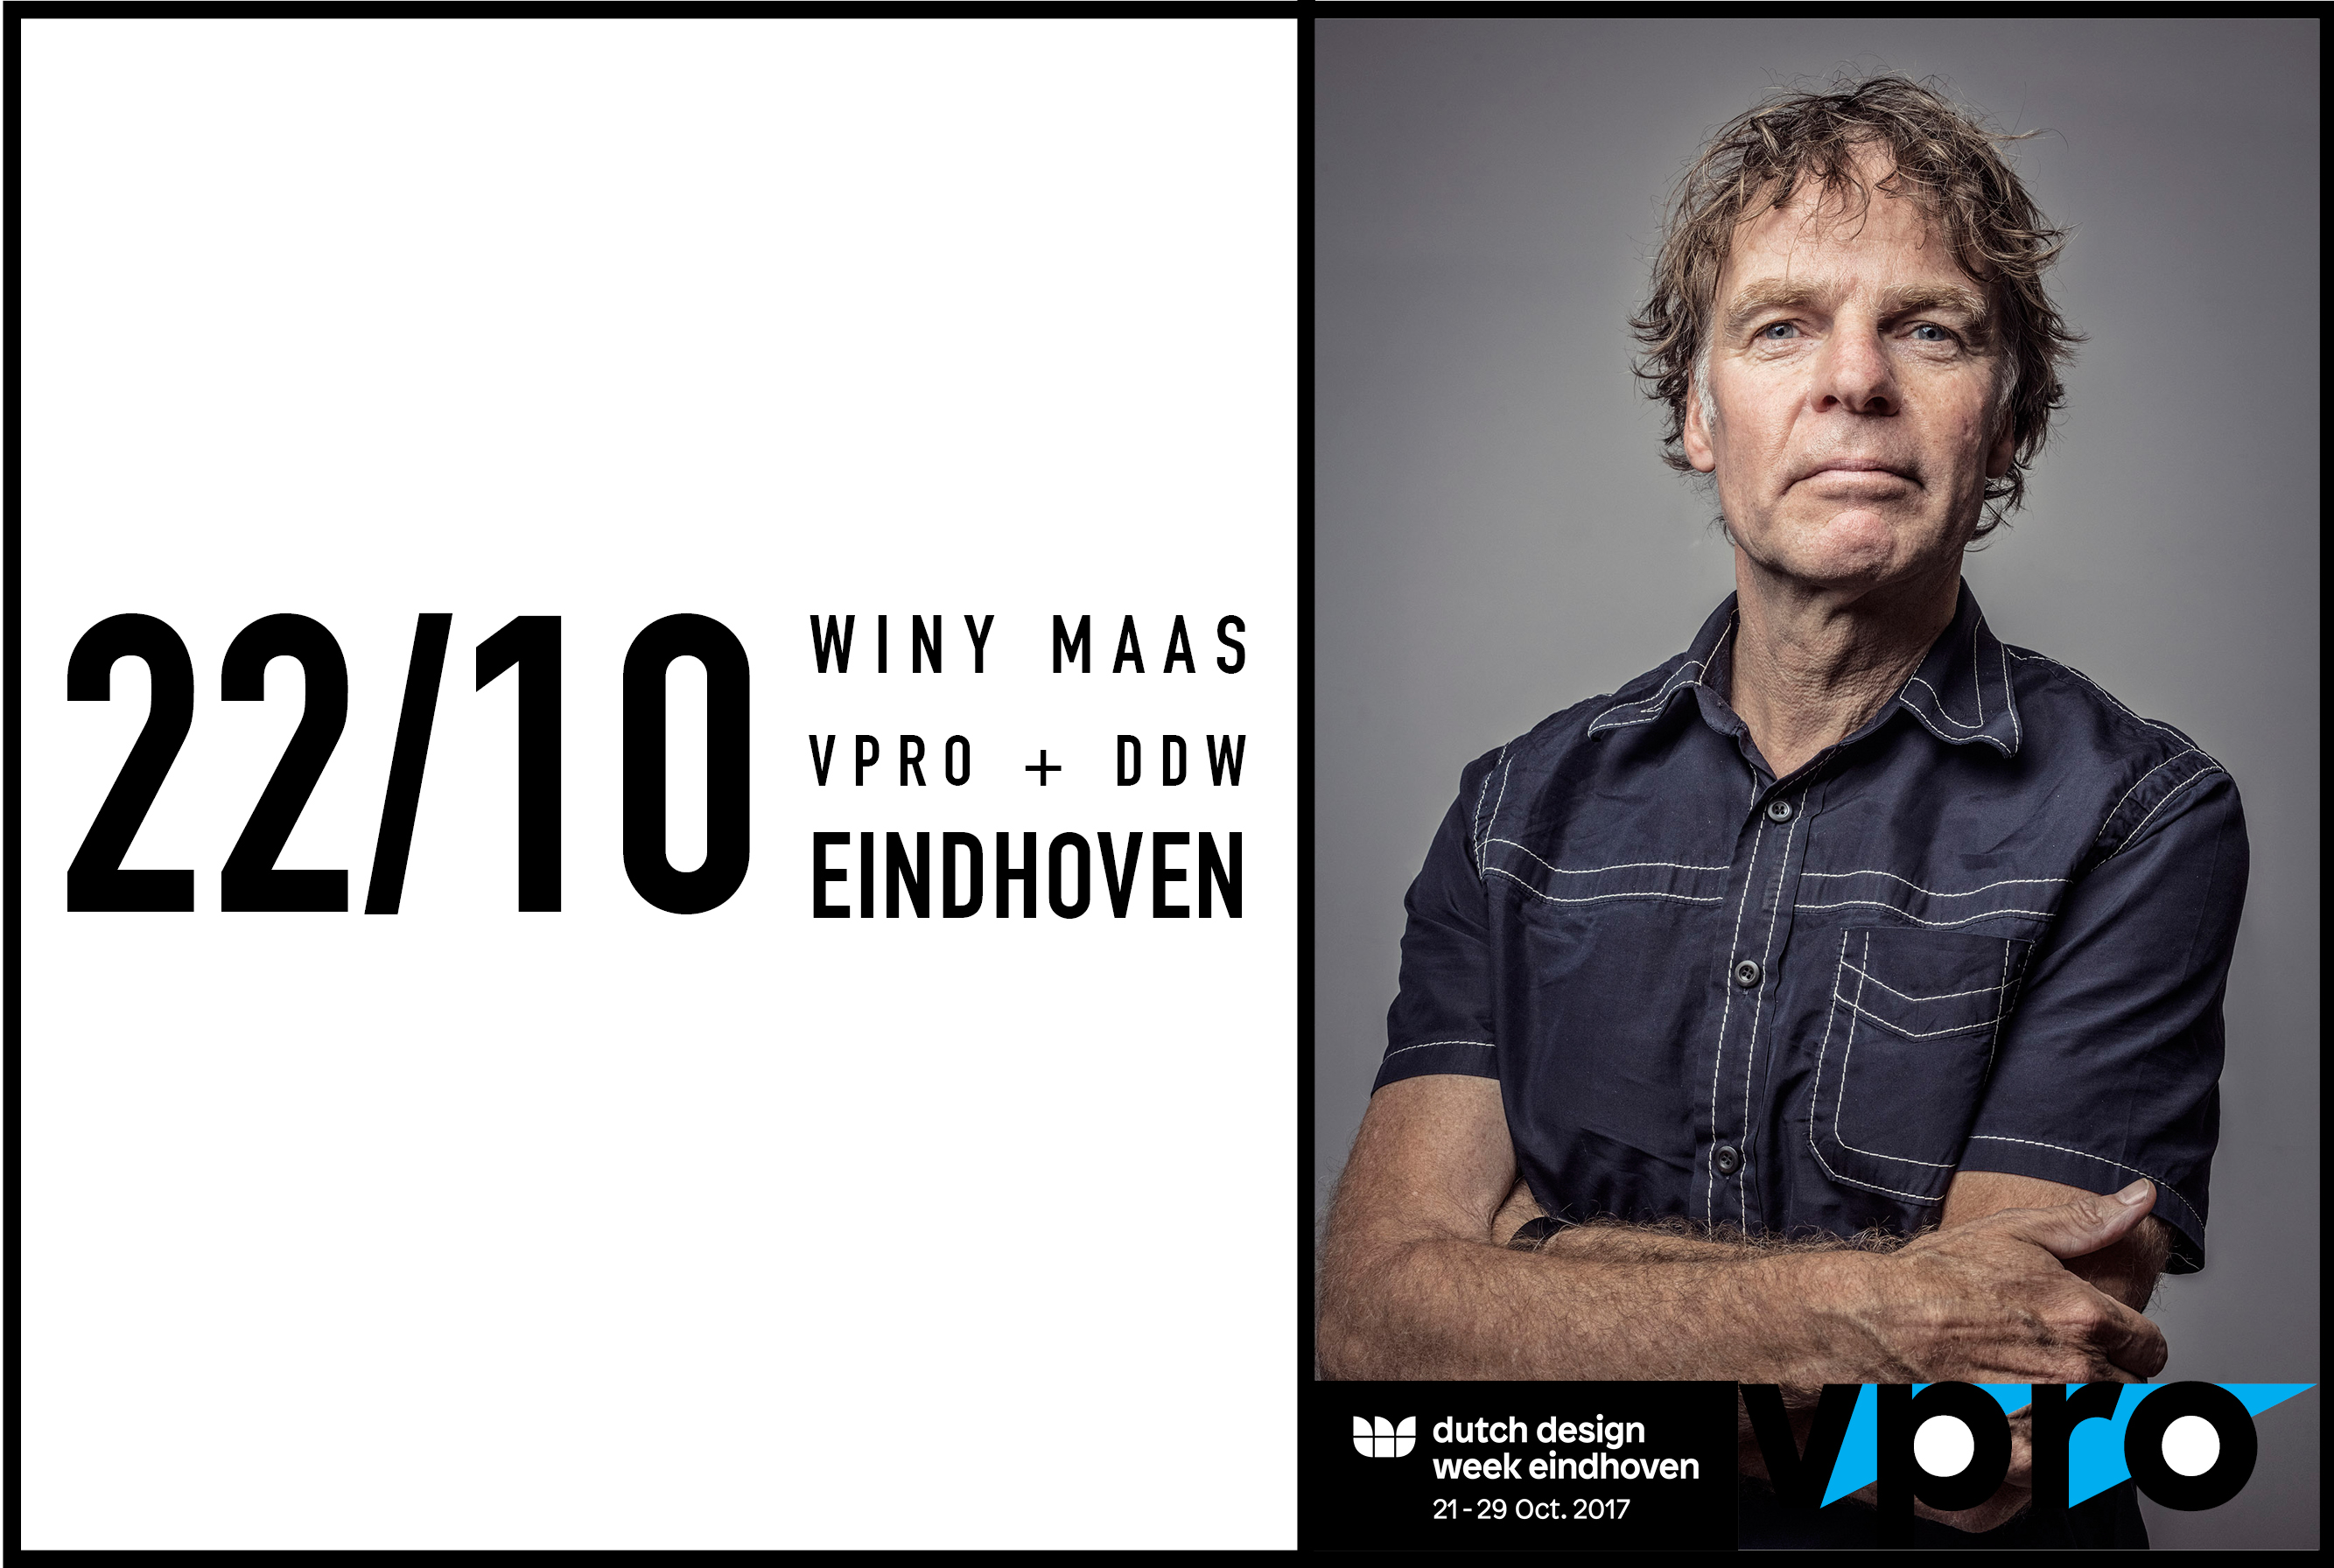 VPRO Day With Winy Maas as keynote speaker during Dutch Design Week in Eindhoven, 22 October 2017